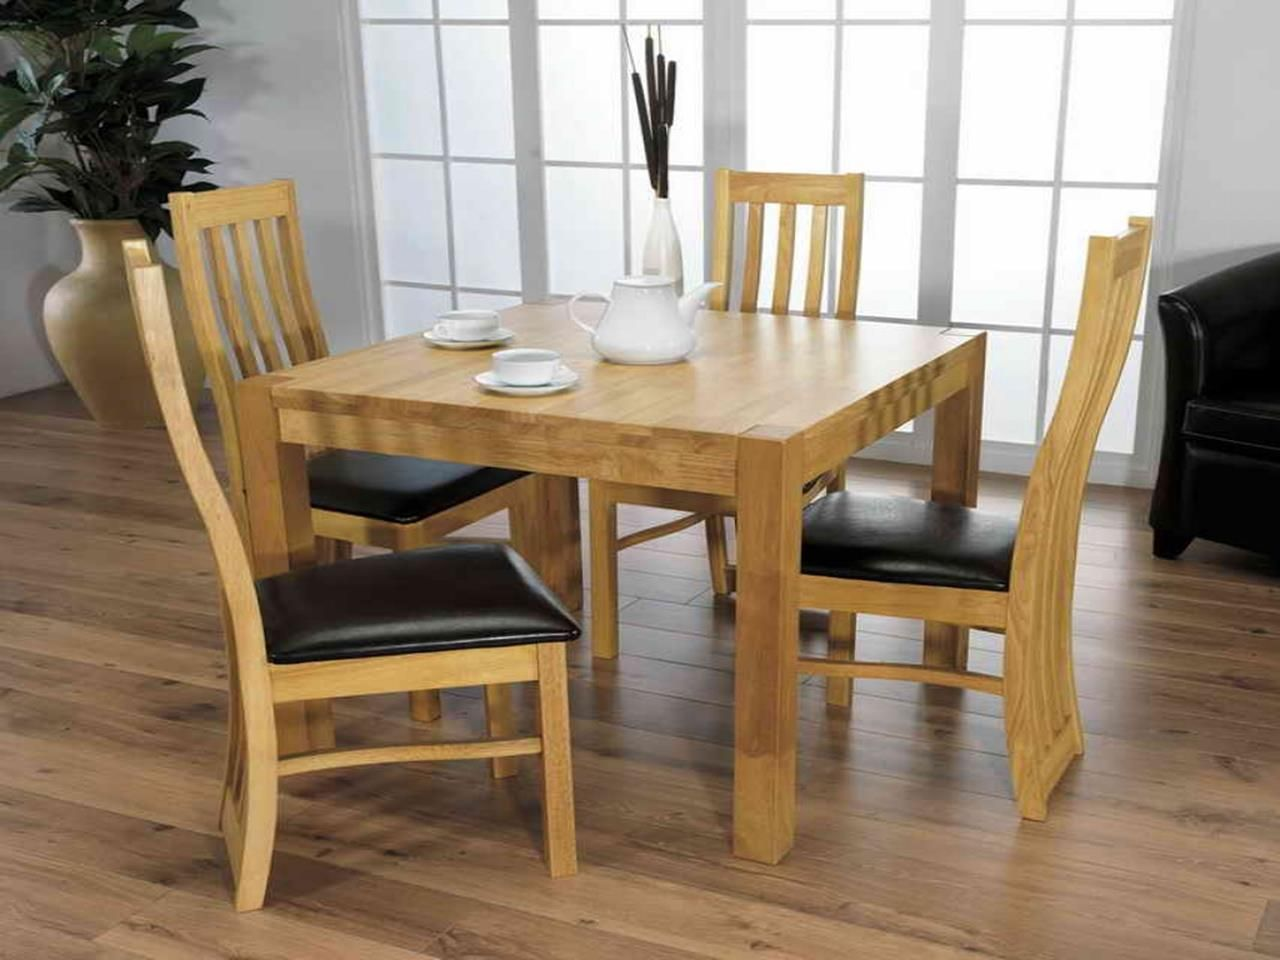 kitchen table sets for small spaces 37 in 2020 | small